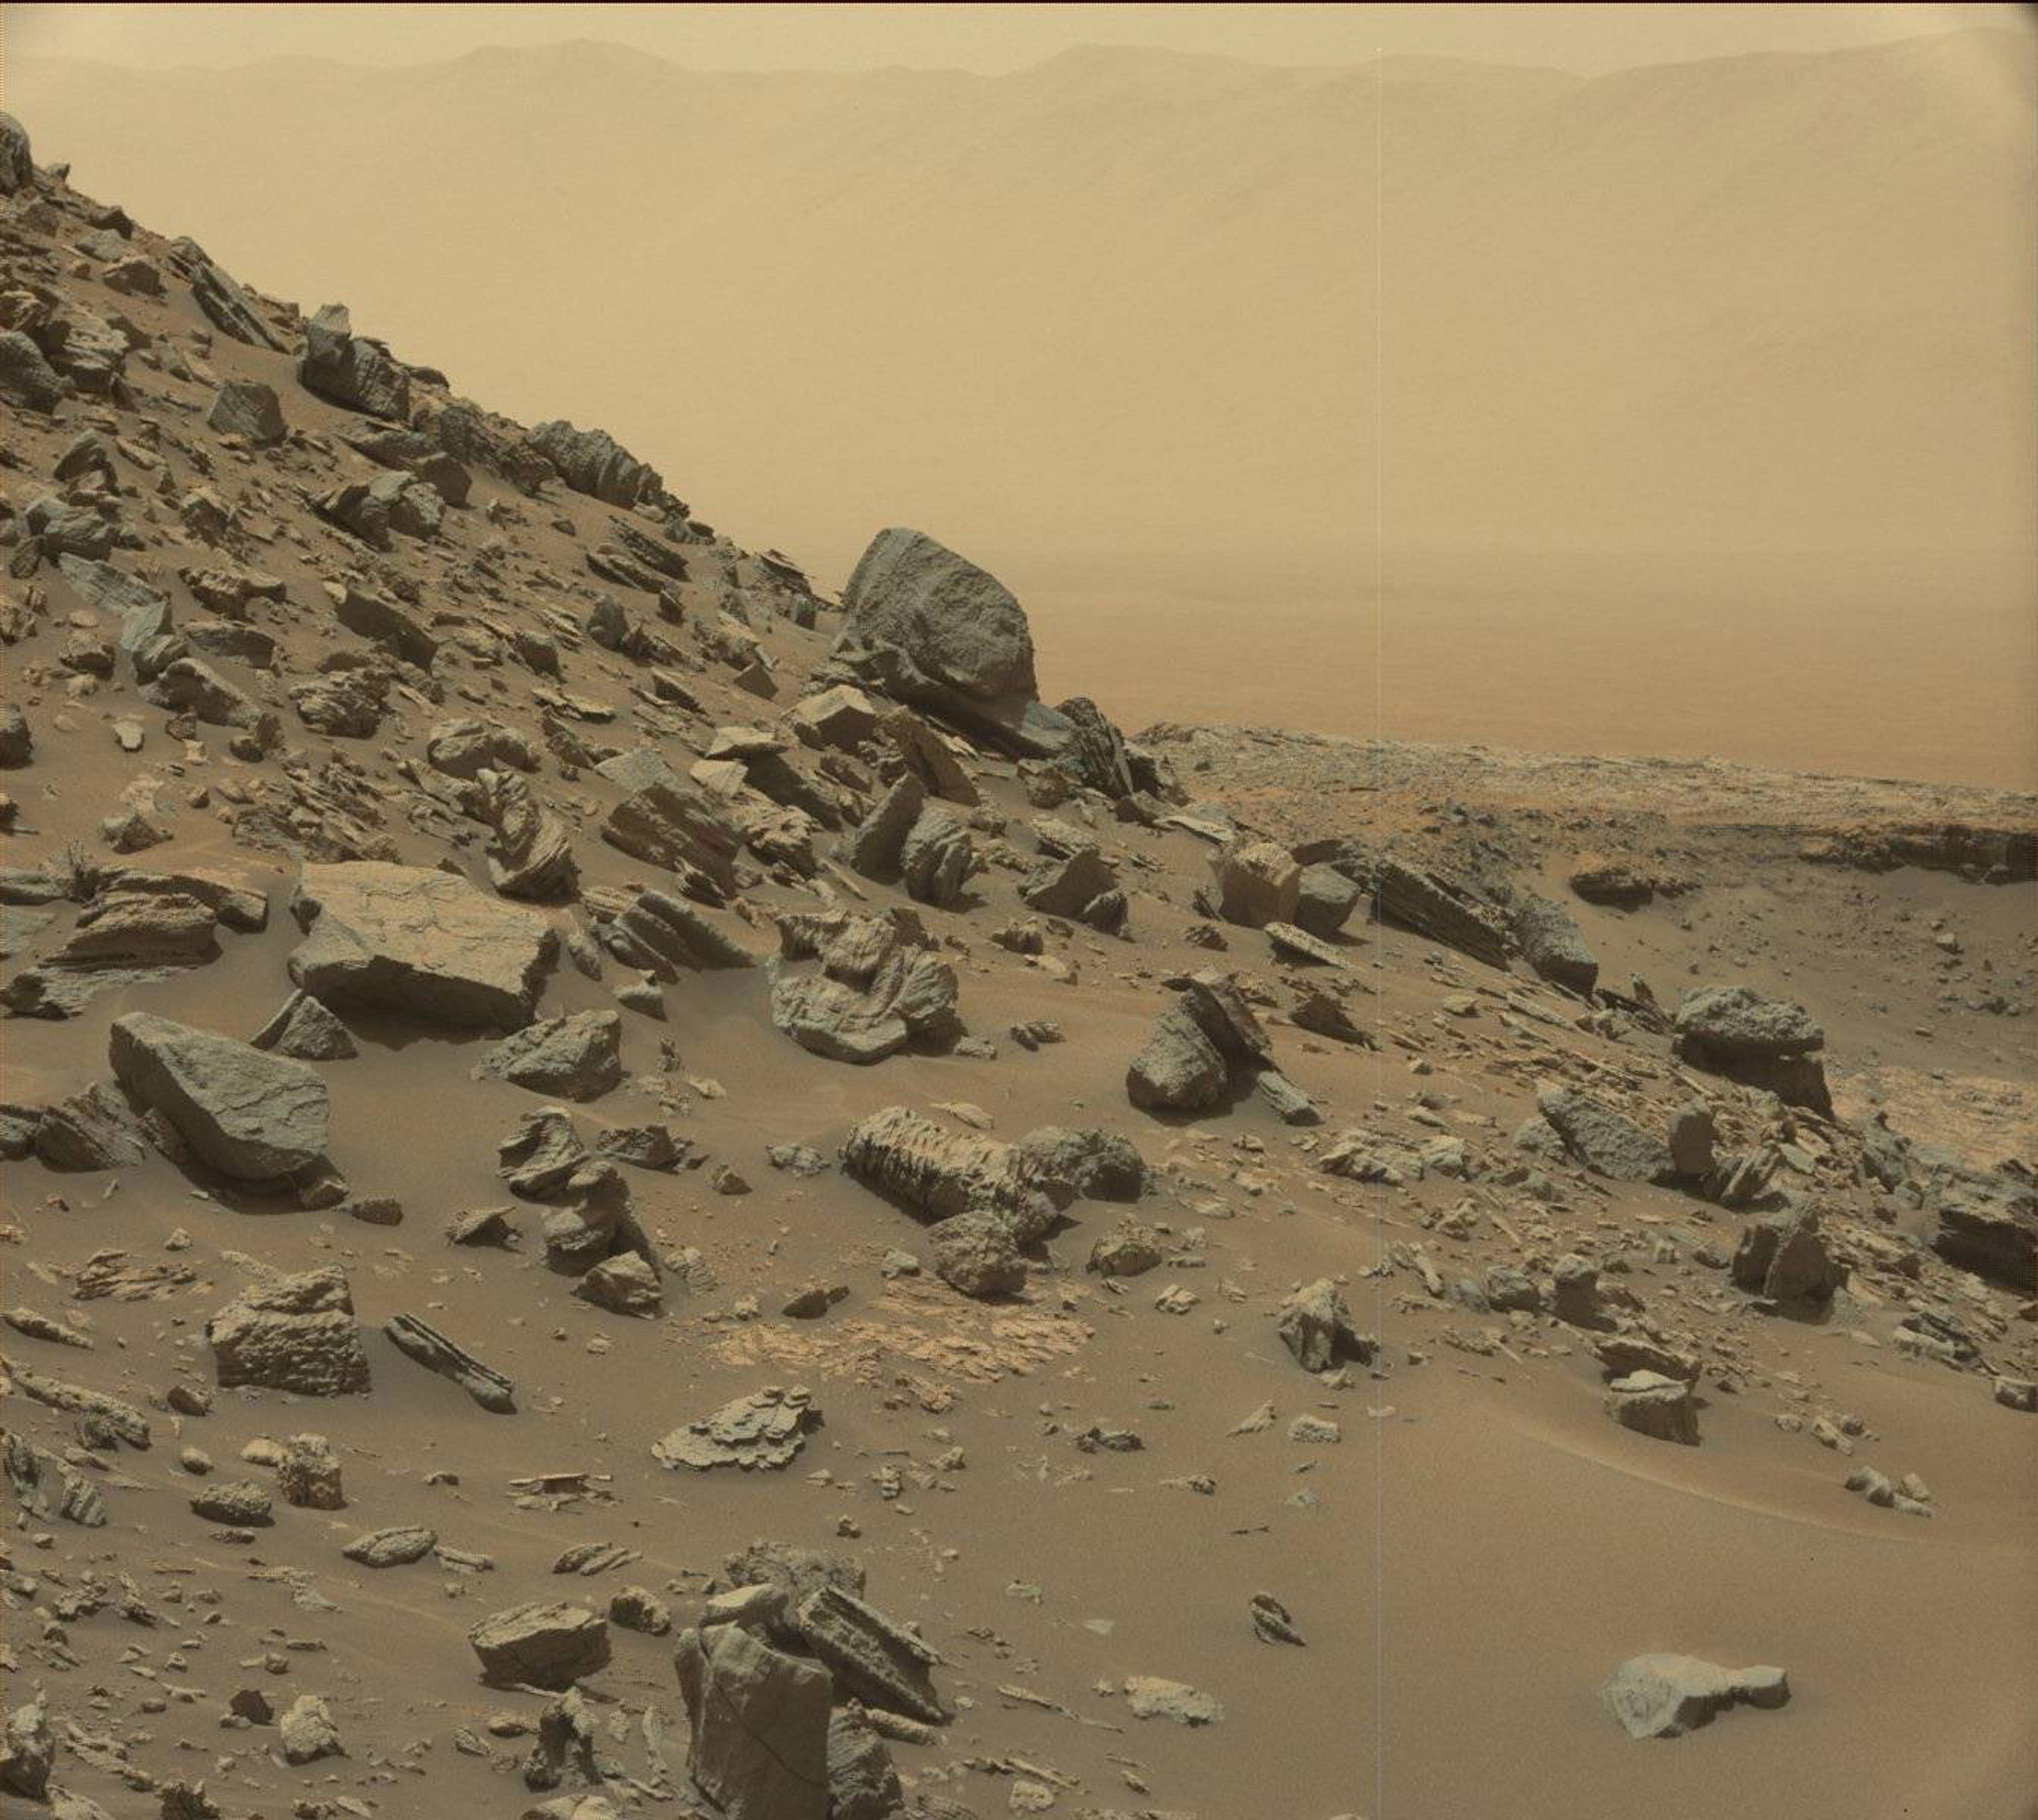 Pin On Mysteries In The Planet Mars Places Seen Photographed By Curiosity Rover Hirise